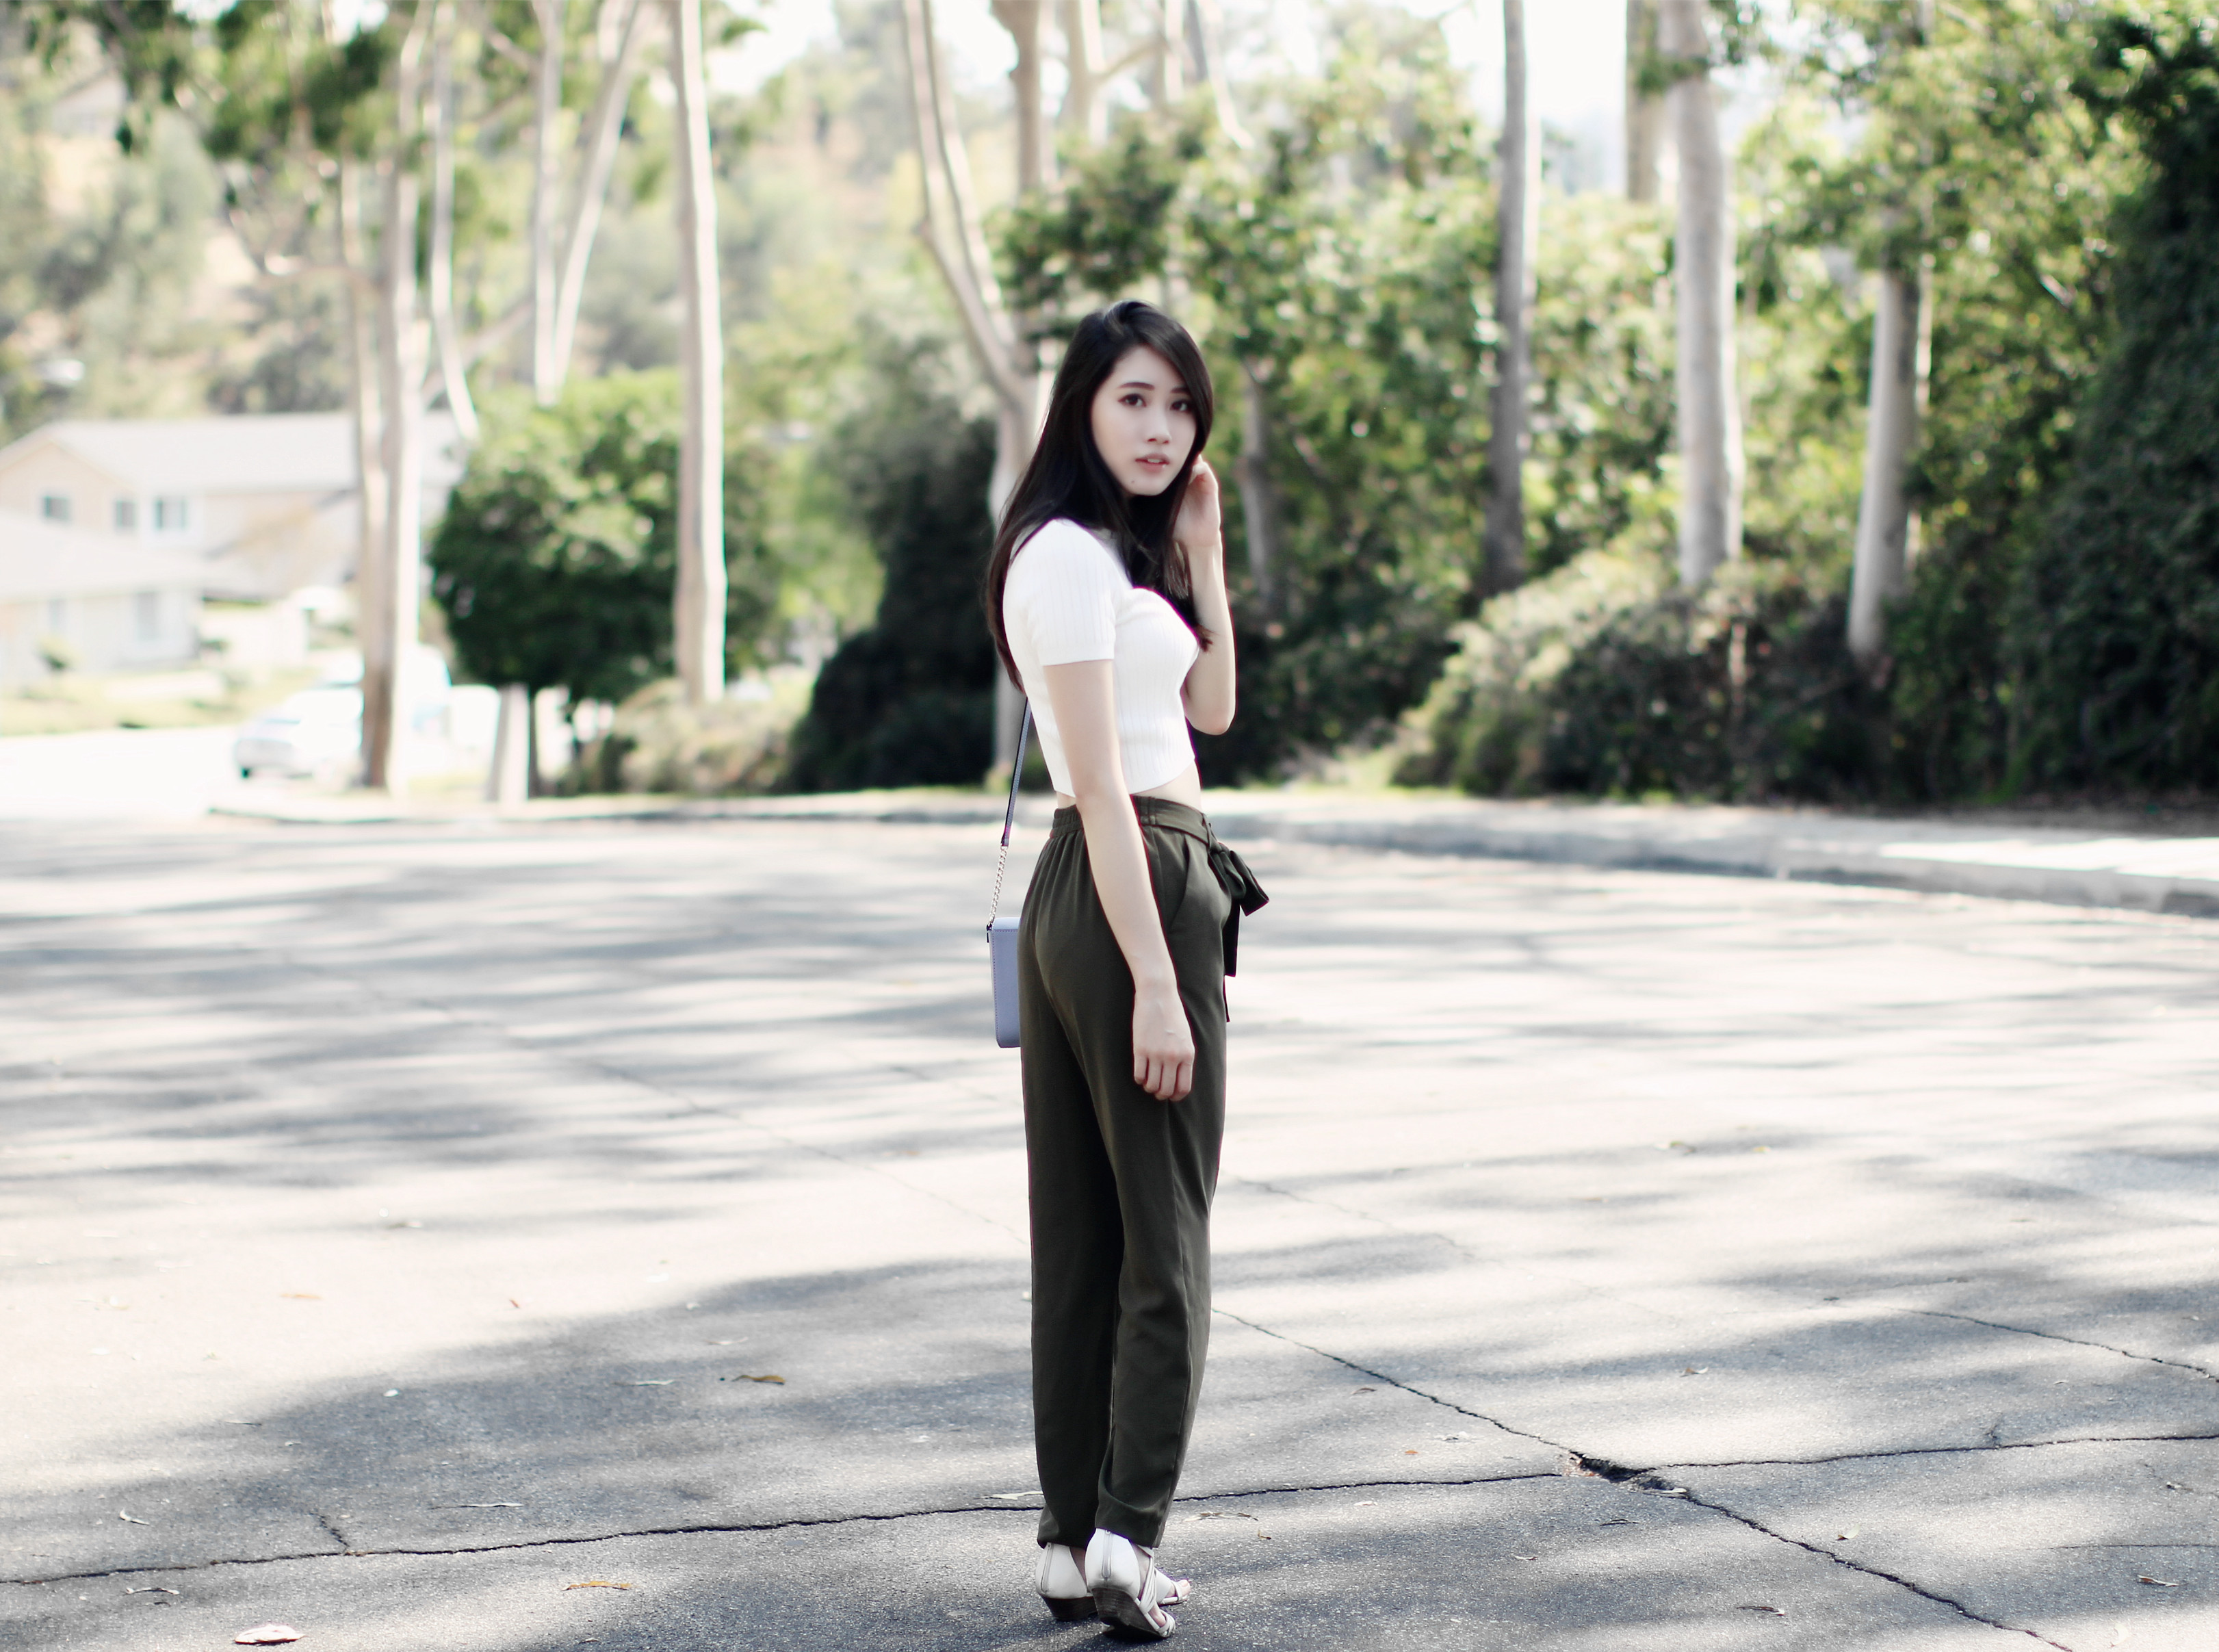 3449-ootd-fashion-style-outfitoftheday-wiwt-streetstyle-menswear-forever21-f21xme-trousers-elizabeeetht-clothestoyouuu